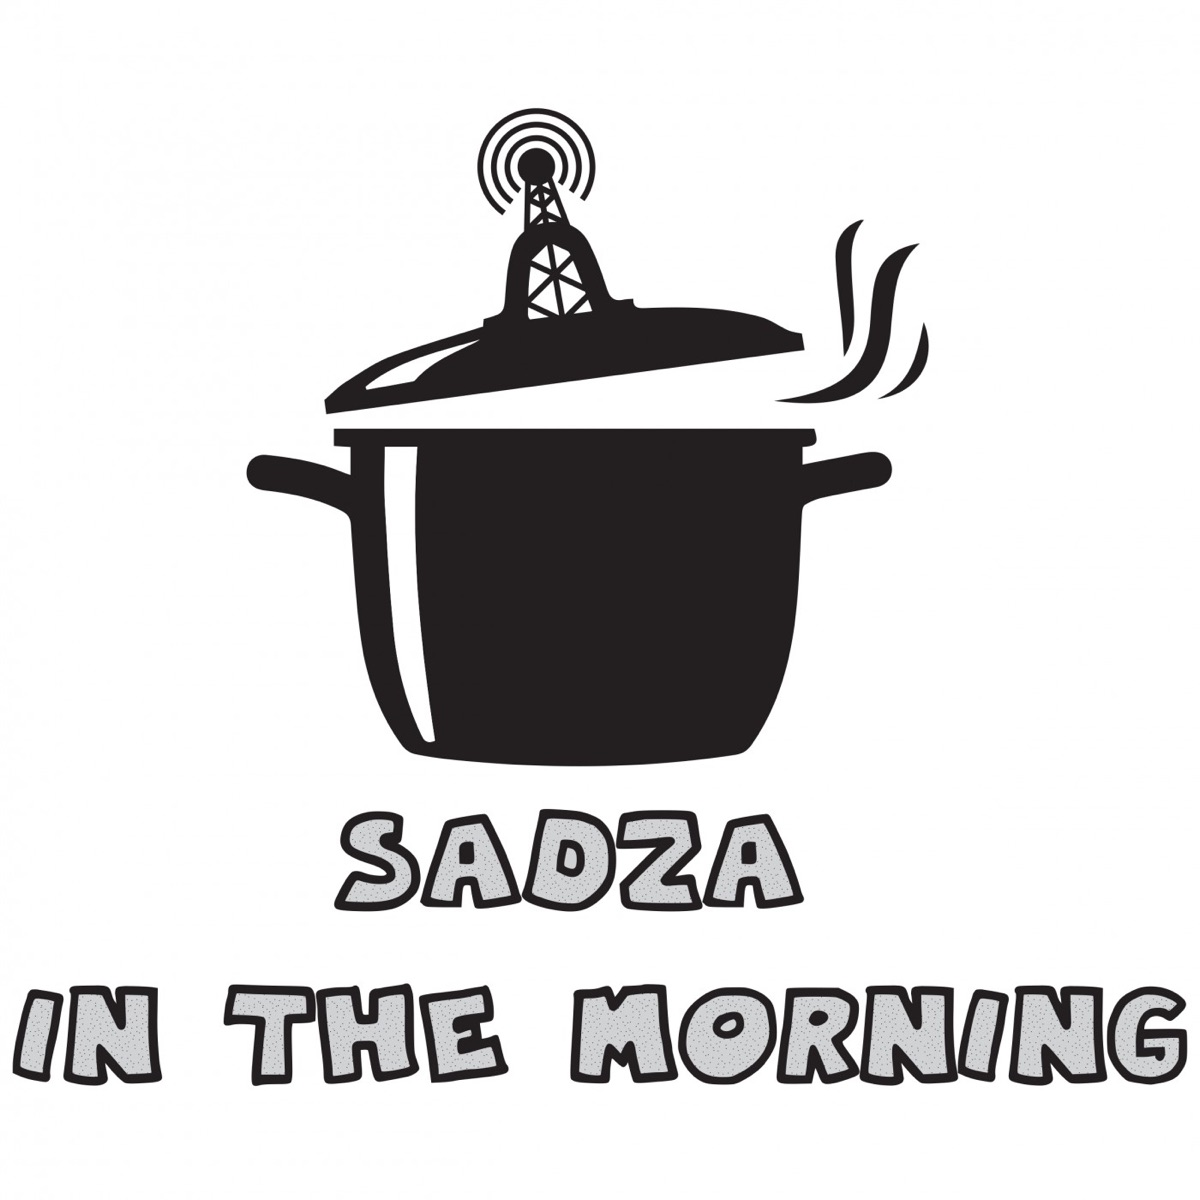 Sadza In The Morning